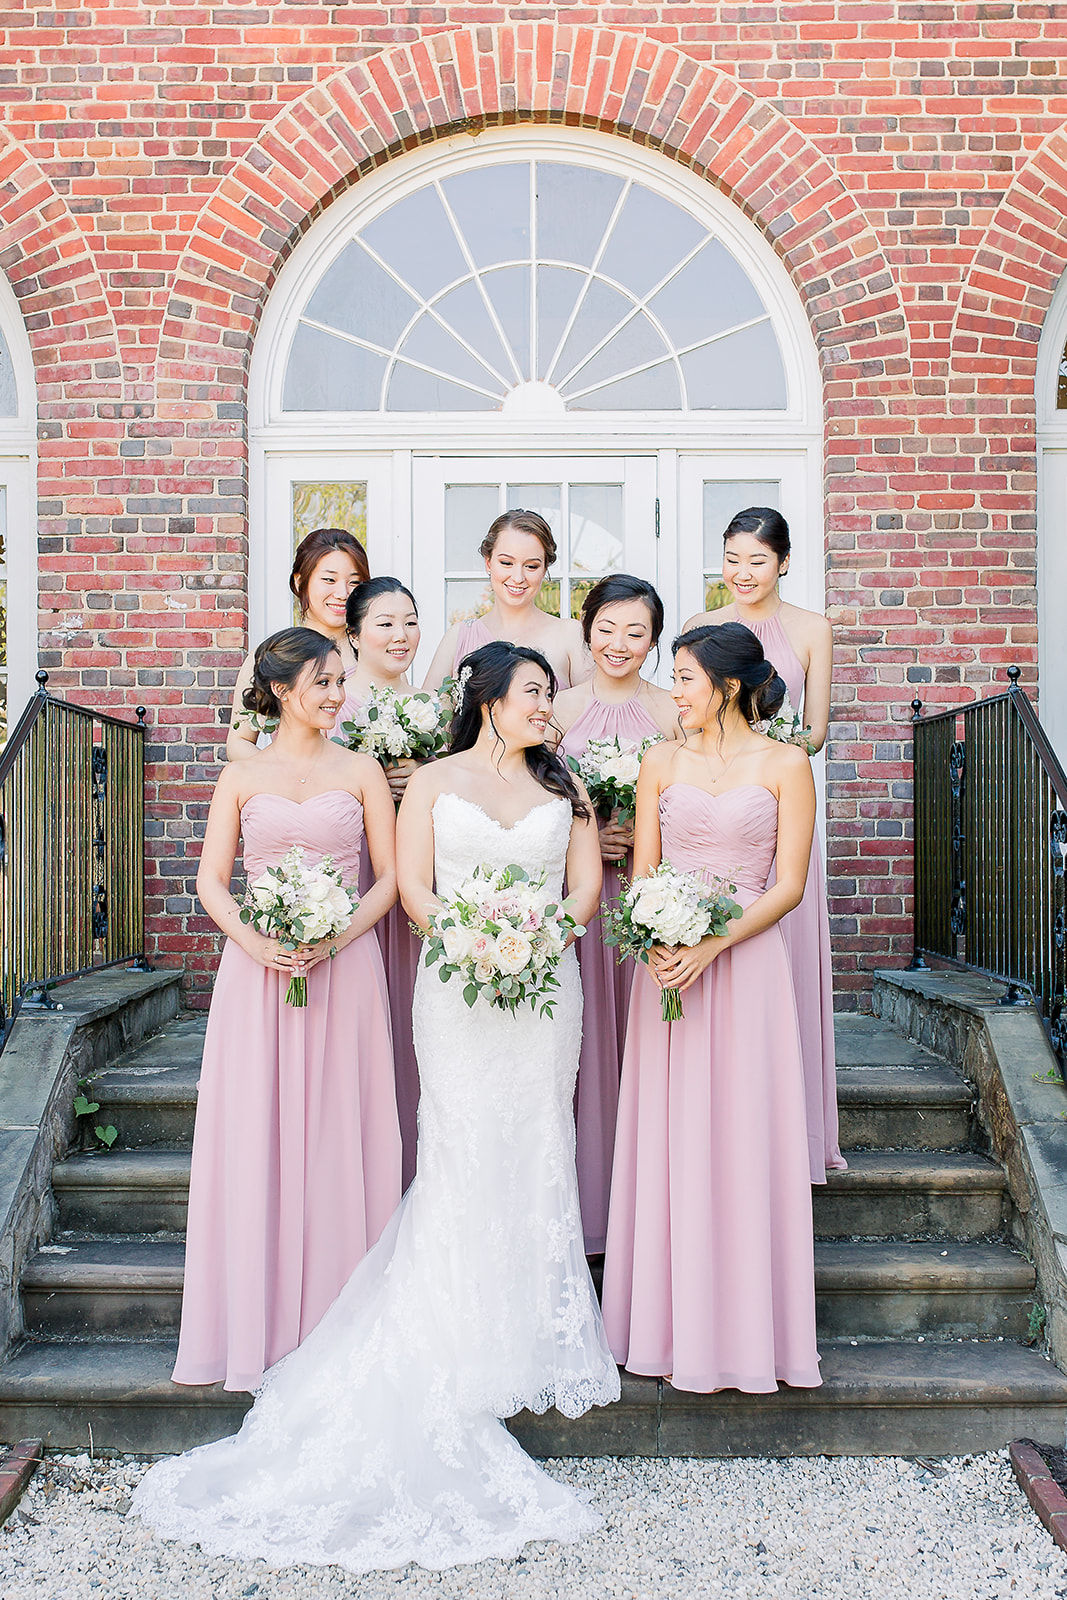 Christine _ Jeremy_Bridal Party-5.jpg